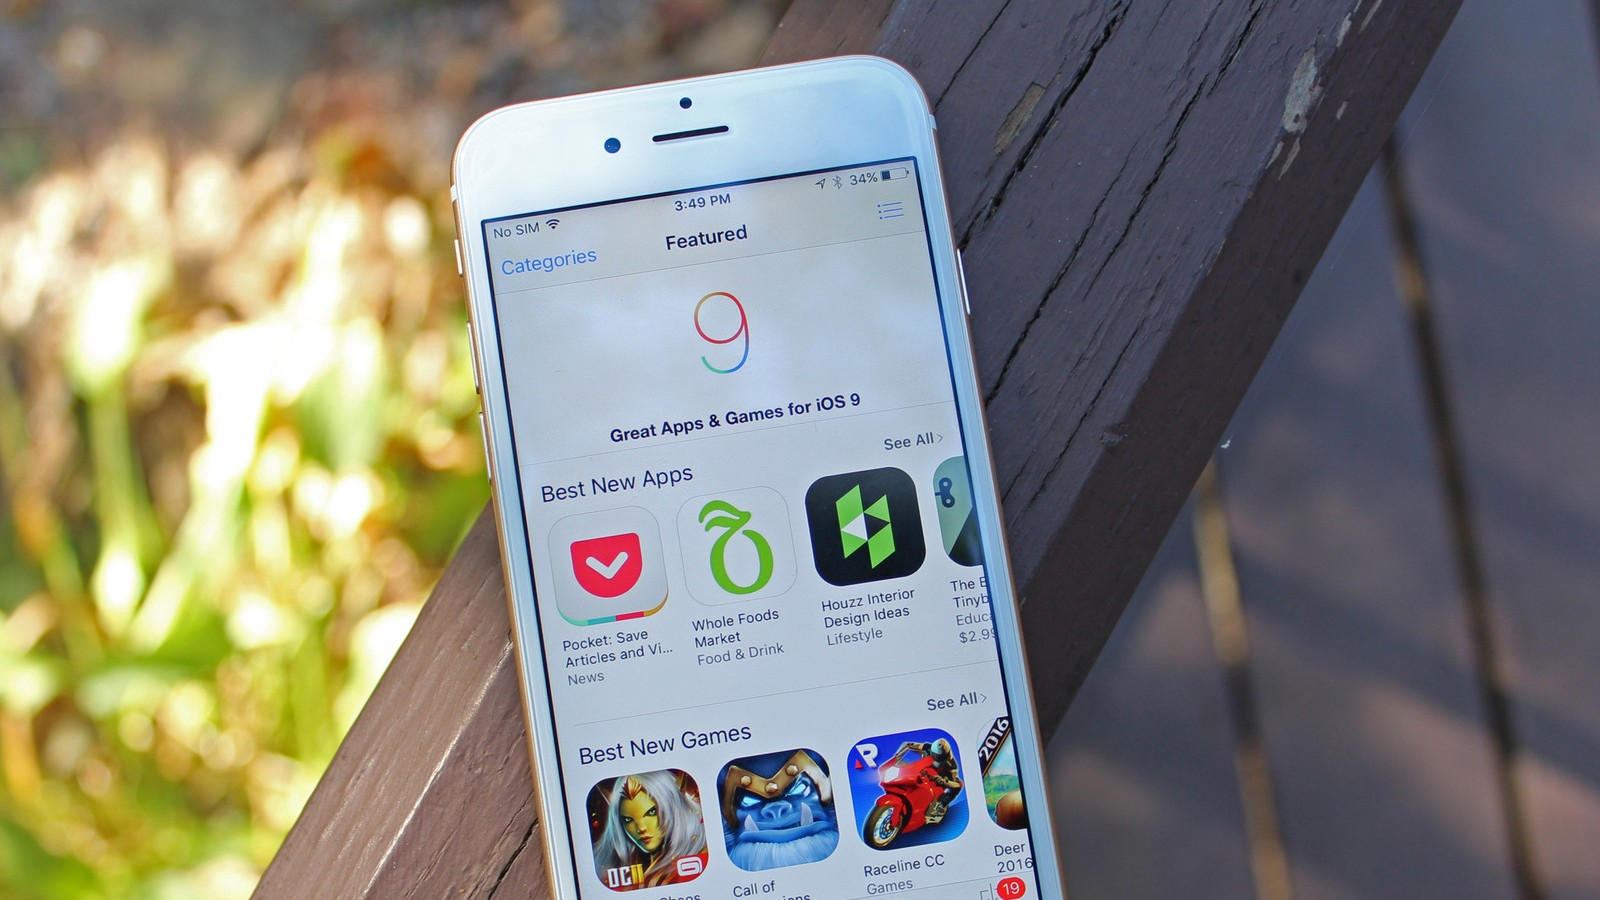 Apple announced a large-scale cleaning in the App Store